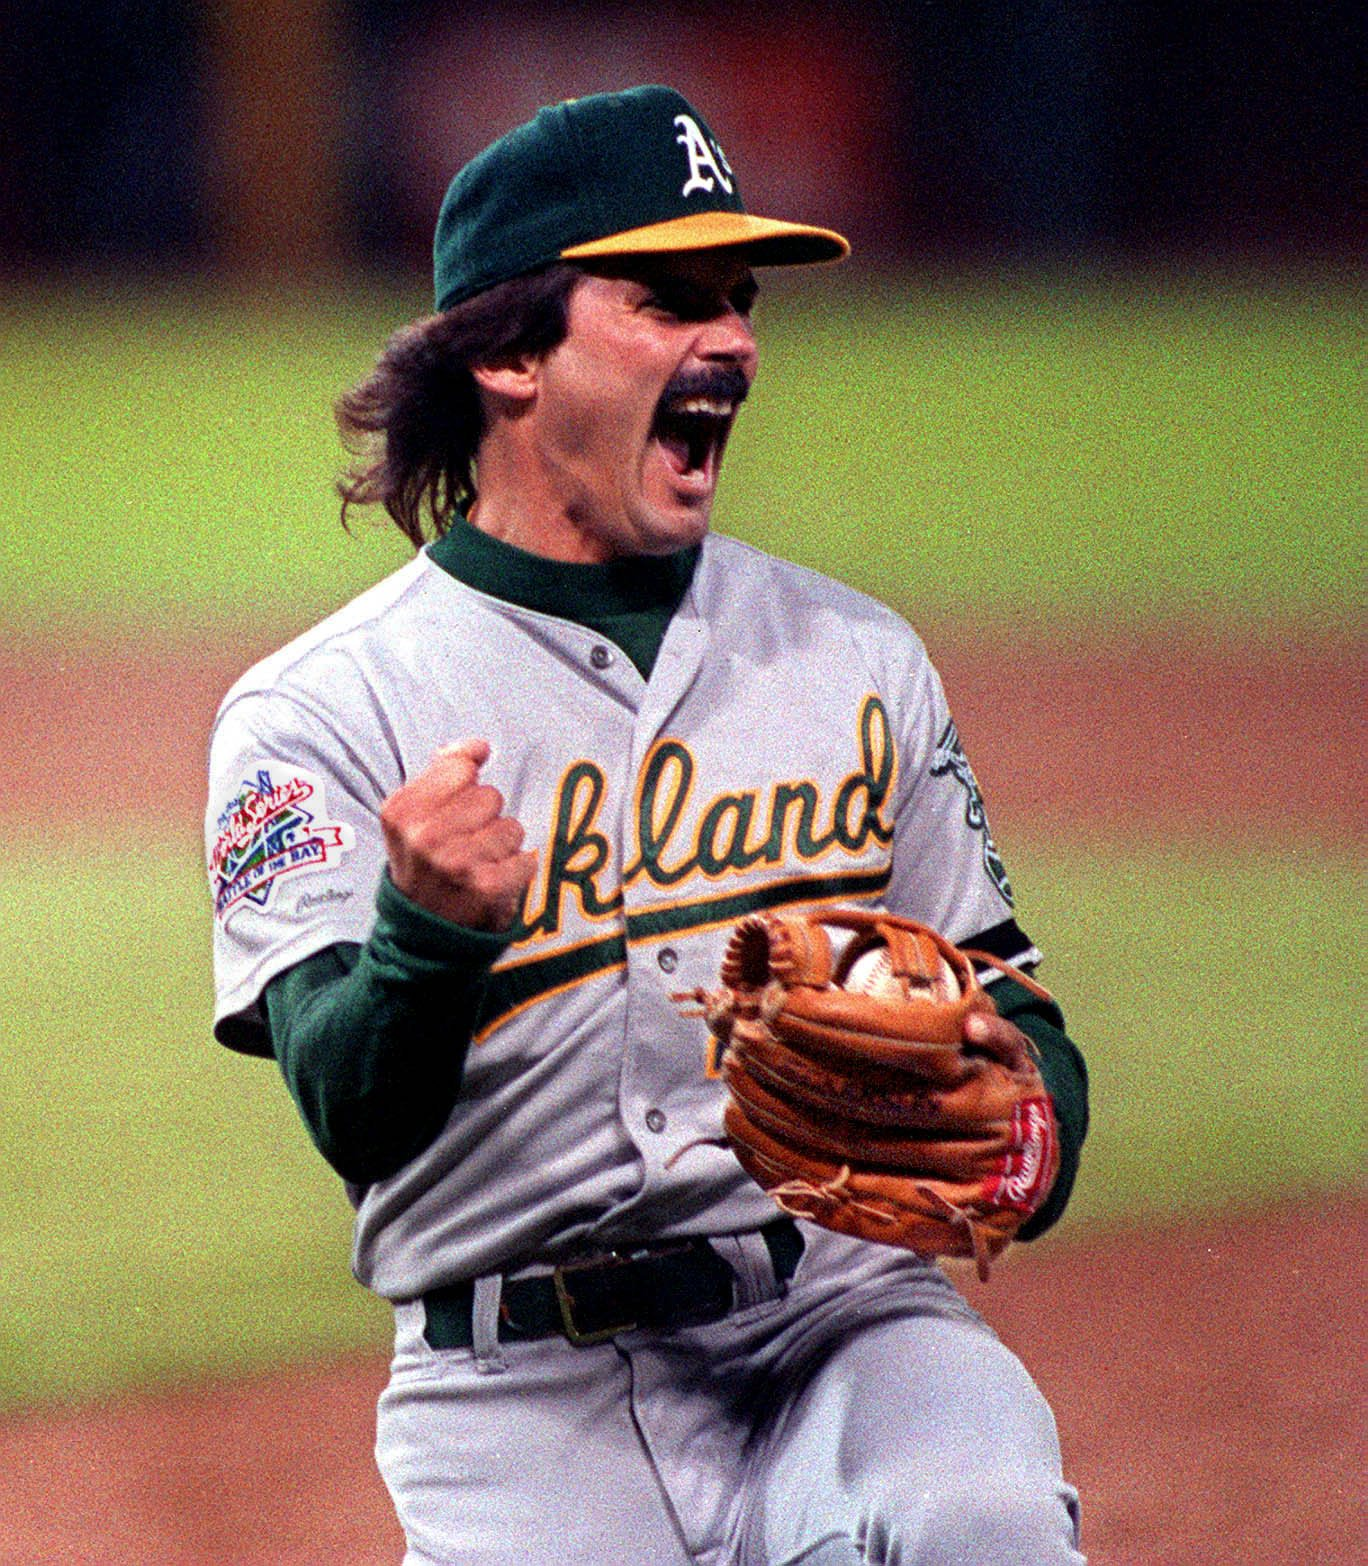 On this date, 1995: Dennis Eckersley joins the 300 club